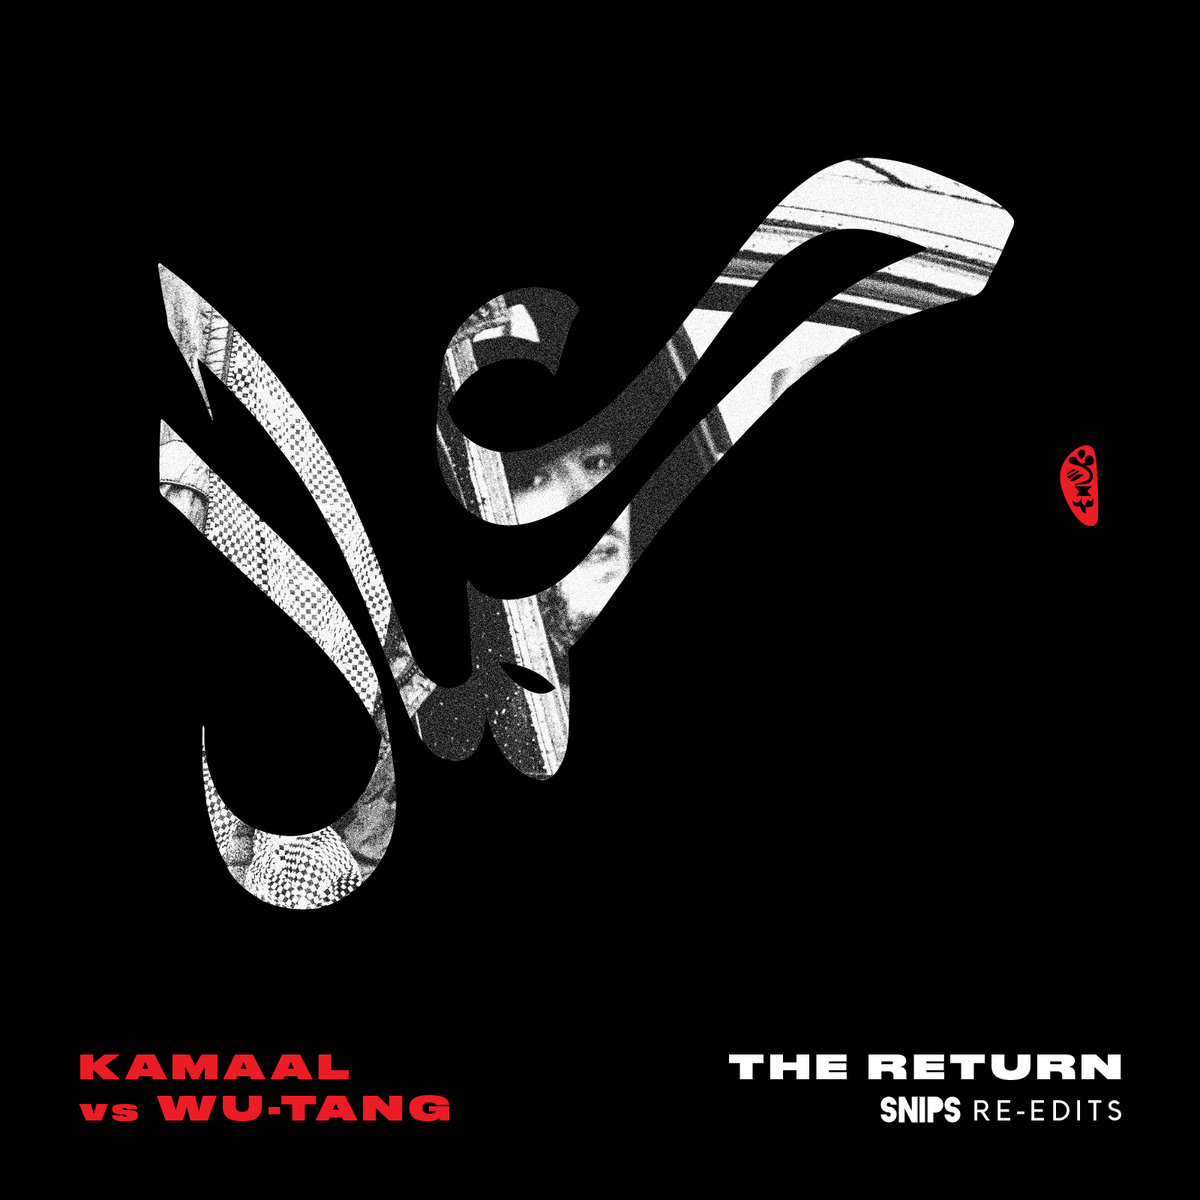 kamaal-williams-wu-tang-free-download-remixes